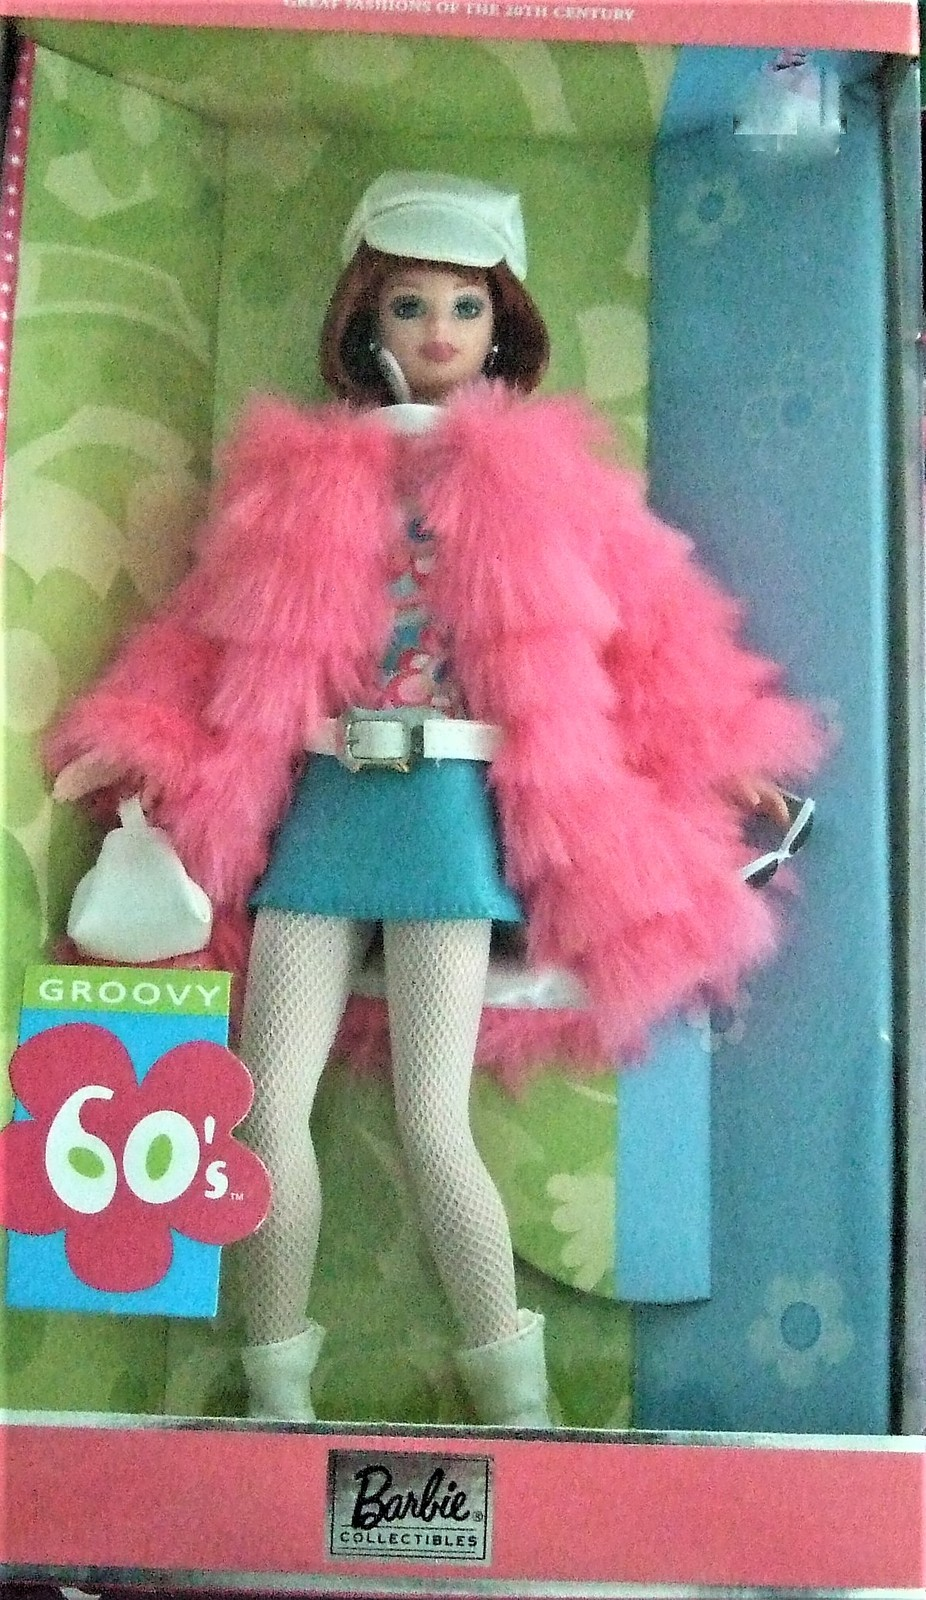 Barbie Doll - Groovy 60's  Great Fashions Series (Collectors Edition)